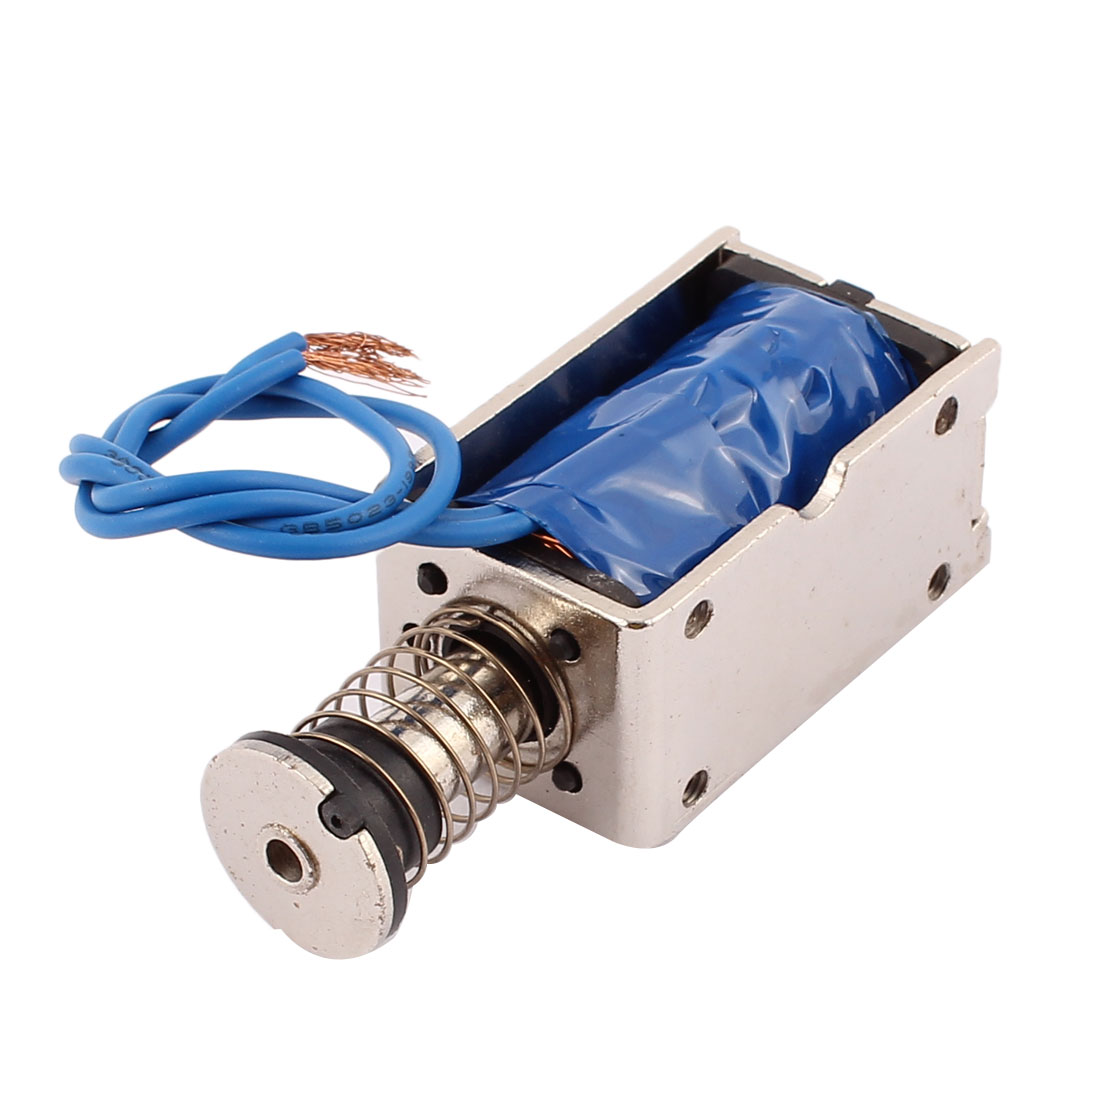 UXCELL Material Jf-Z05 12V 0.4A 45N Pull Push Type Open Frame Solenoid Electromagnet electronic | metal, | parts jf z05 dc 24v 400ma push pull type open frame solenoid electromagnet 10mm 45n 9 9lb